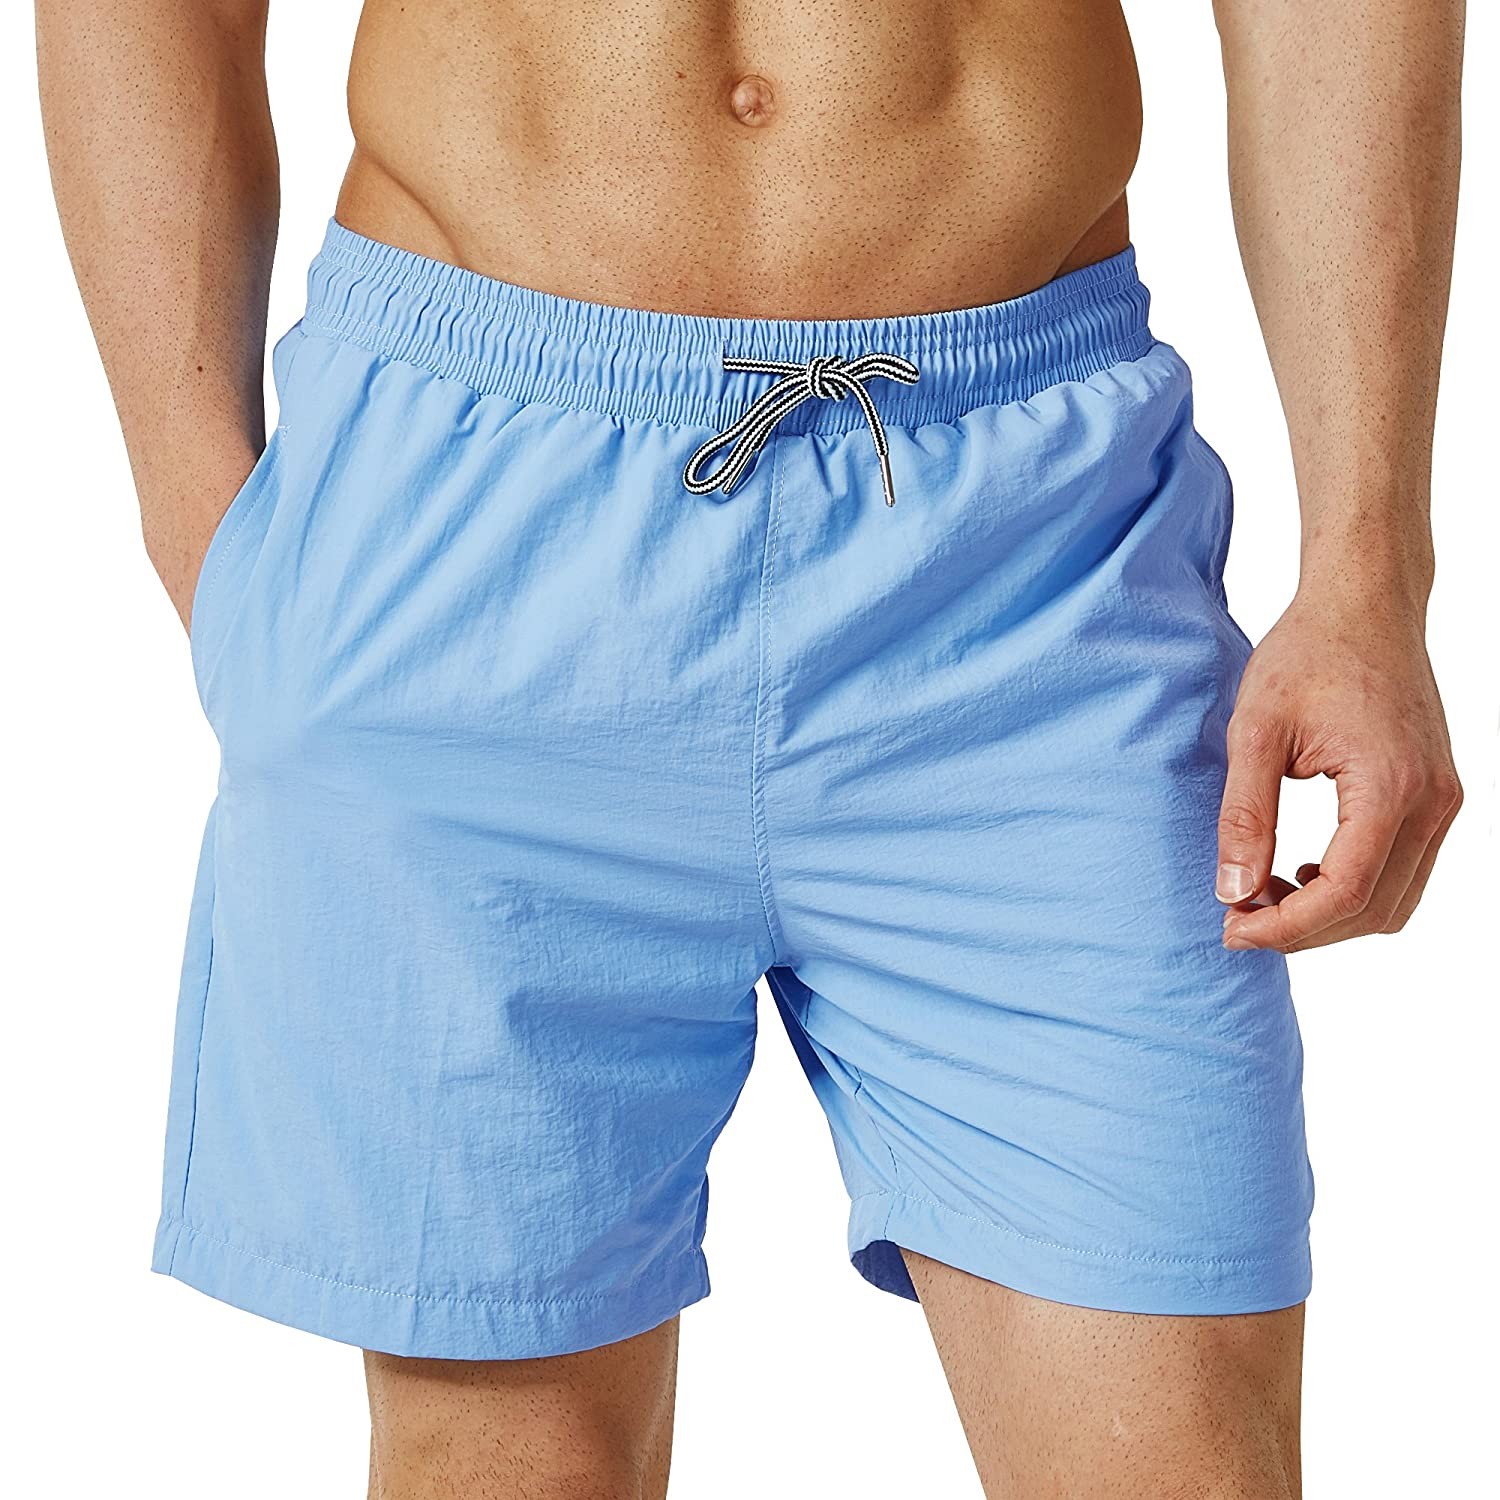 cd9fb41e6e MATERIAL: 100% Polyester - Quick-drying strong and soft, made with comfort  technology fabric, our mens bathing suits all get great quick dry function,  ...